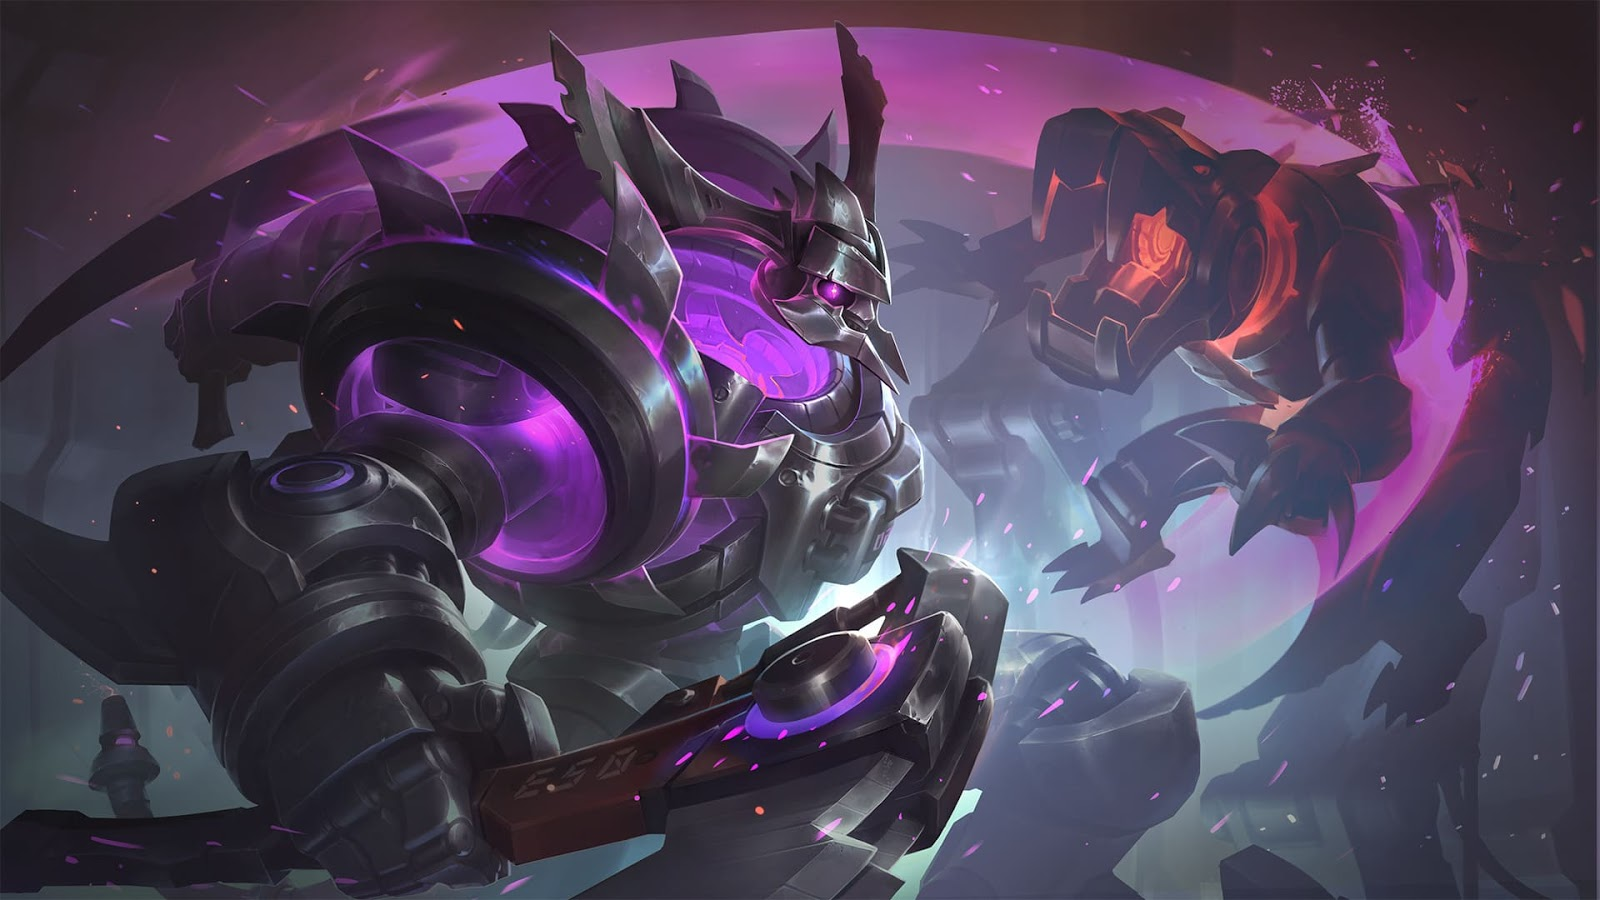 Wallpaper Thamuz Abyssal Reaper Skin Mobile Legends Full HD for PC